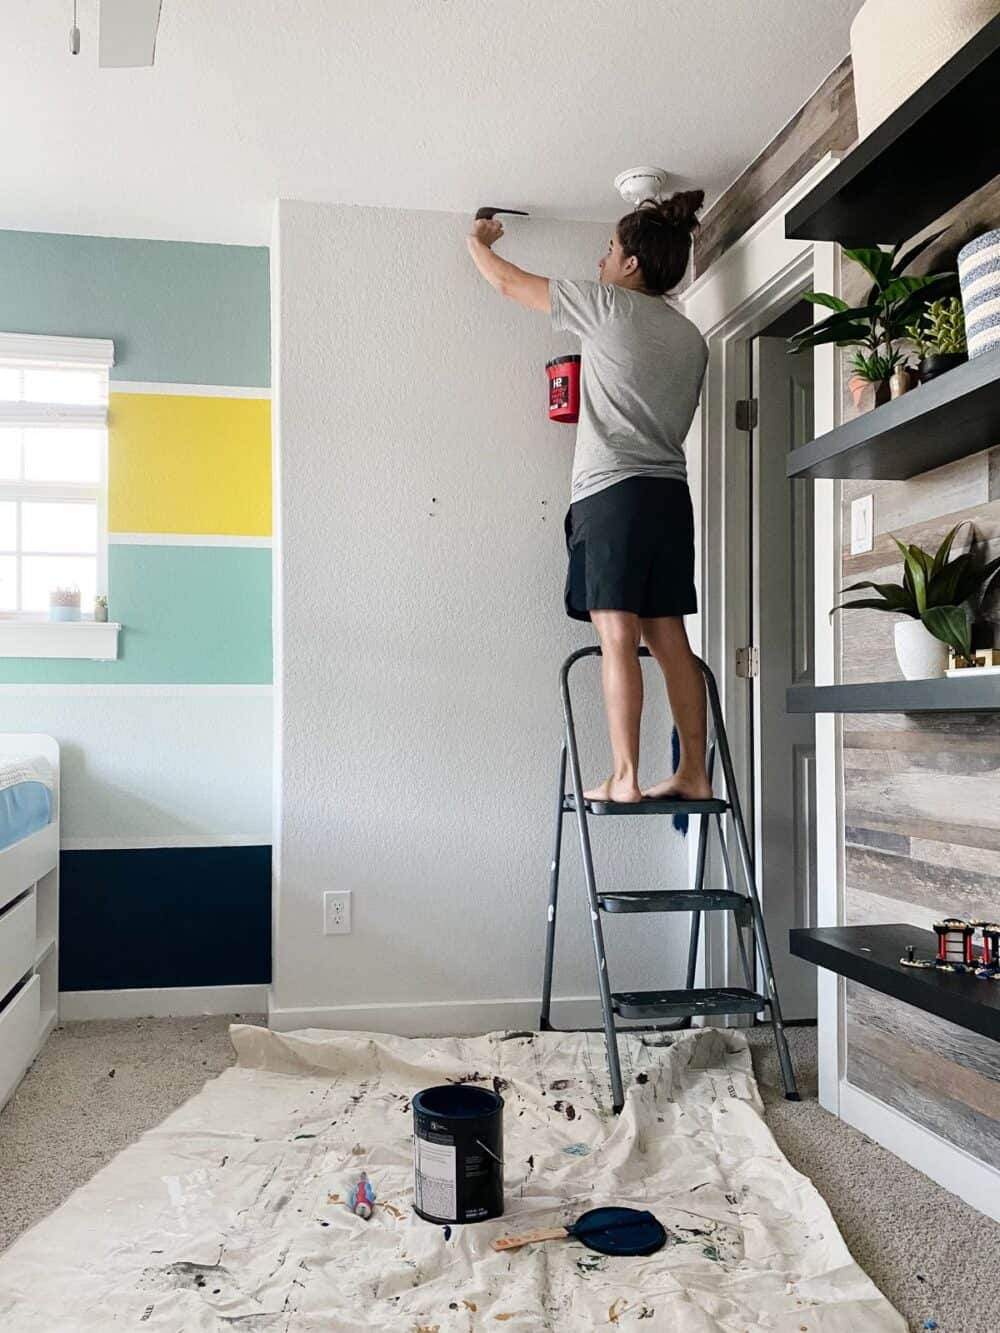 Woman cutting in edges around ceiling to paint ceiling